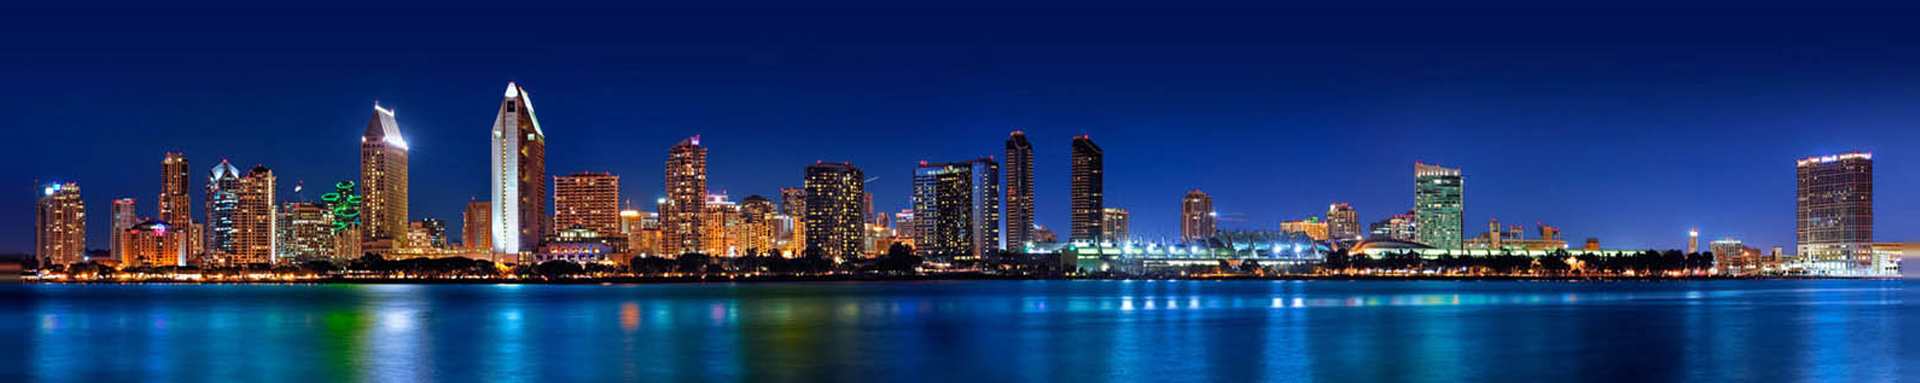 Listing Your Property in Dubai - Top Real Estate Company